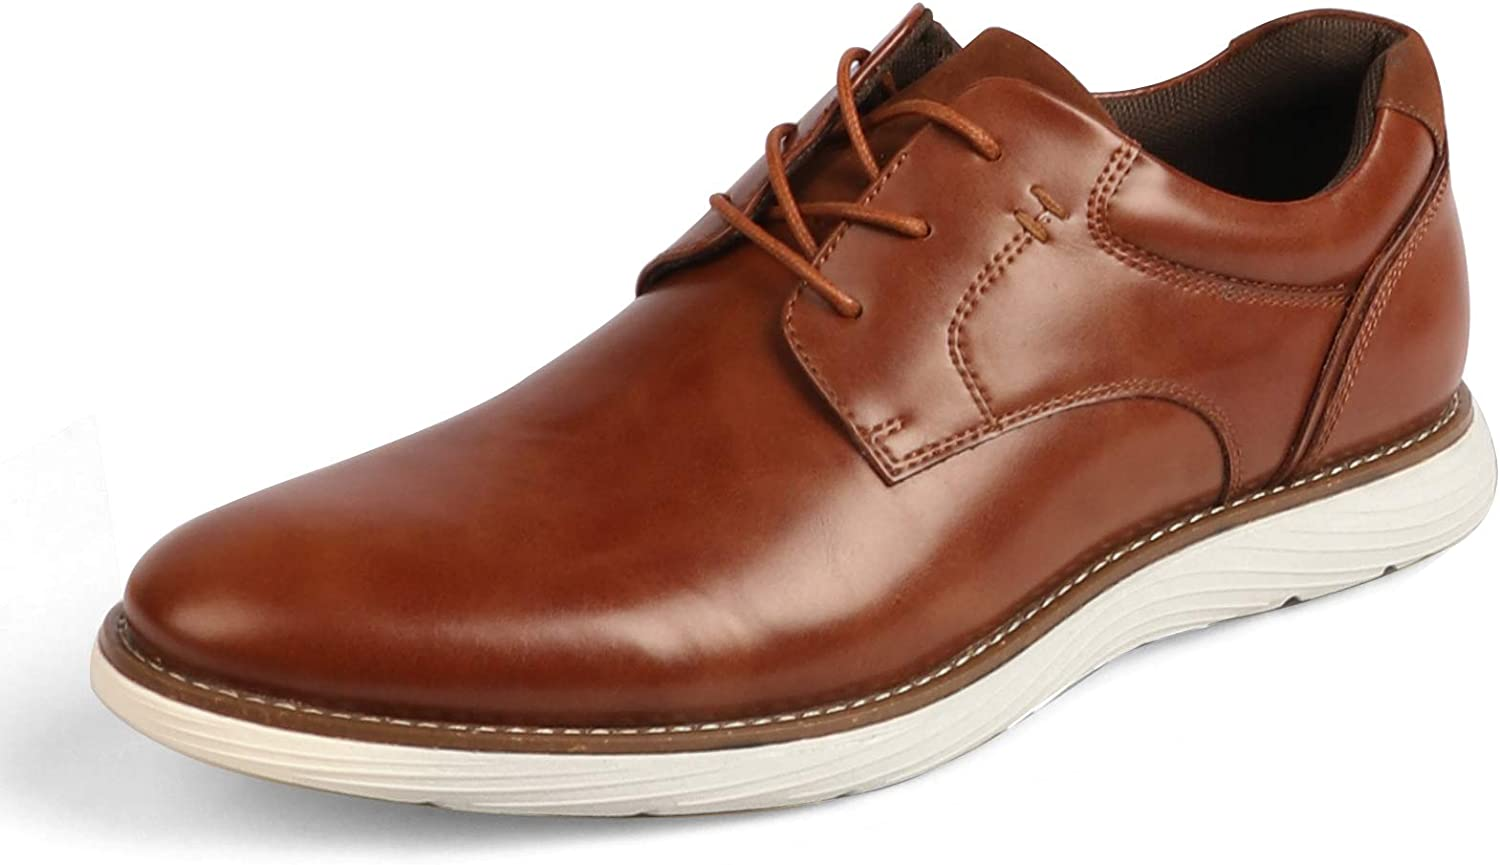 Luckyway Men's Leather Shoes Dress Lace Up Series Casual Oxford Shoe